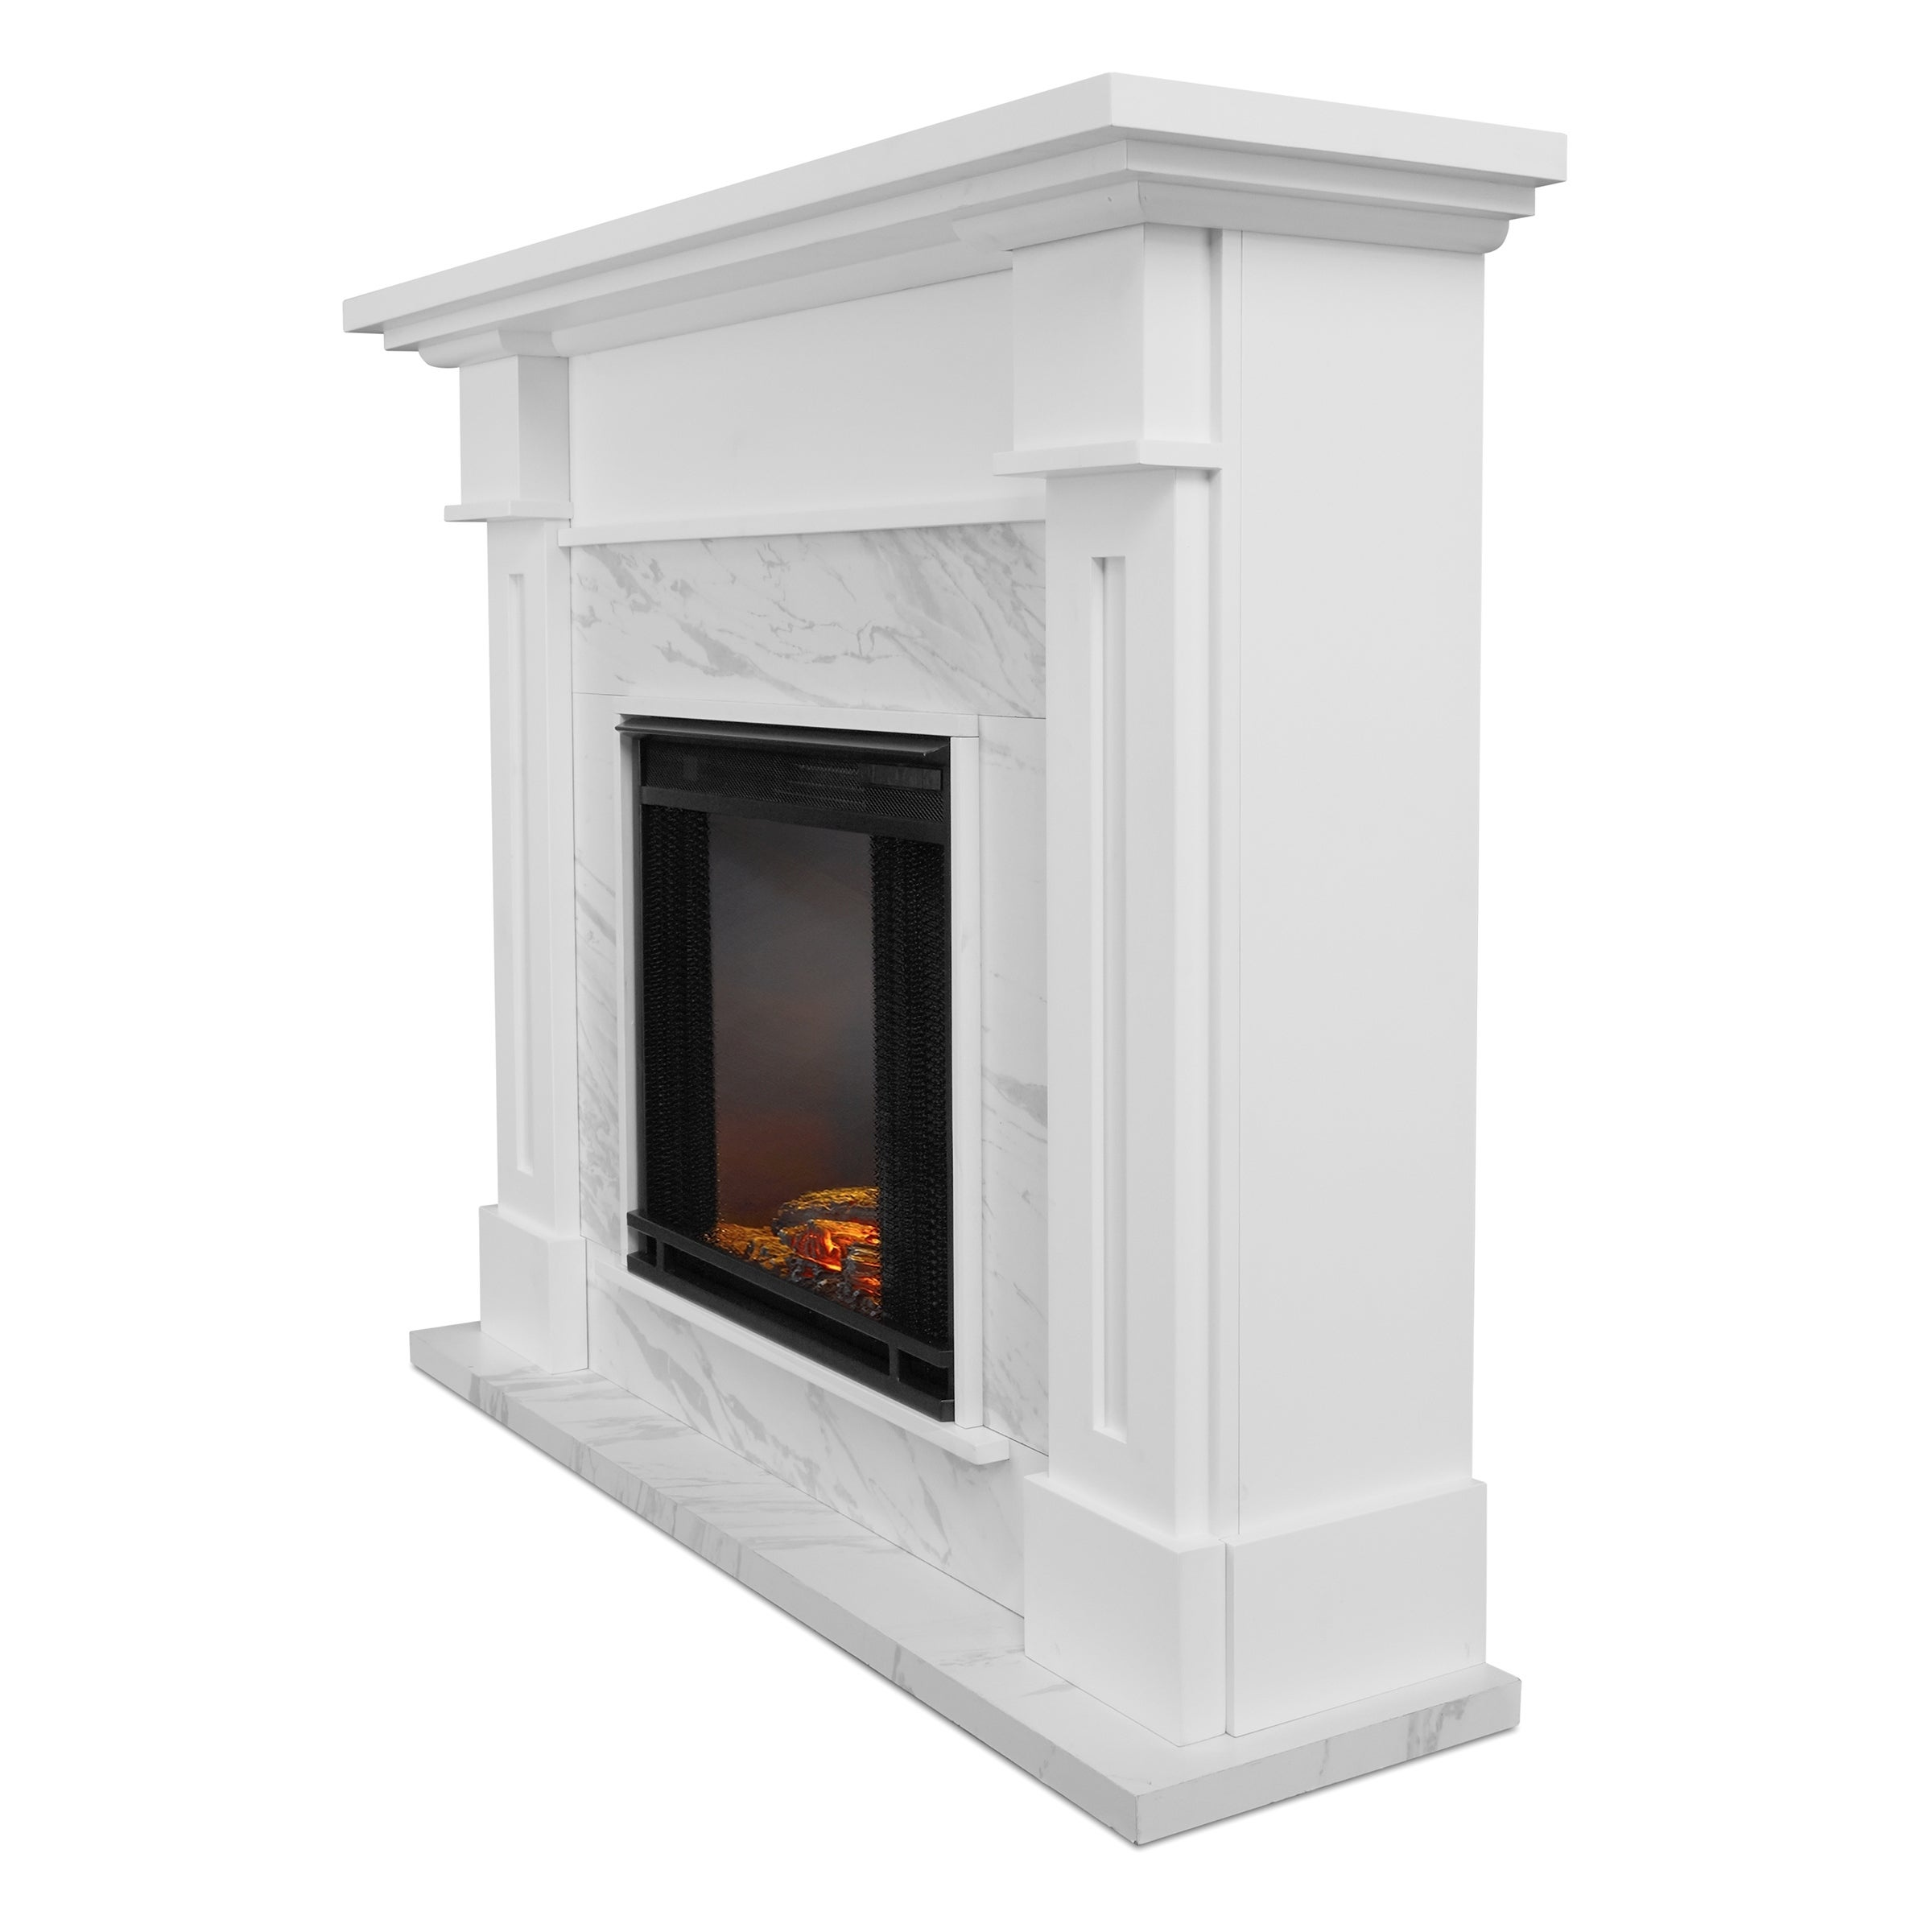 white fireplace products angletv shgfp electric novara consoles fireplaces next dimplex w previous console media en